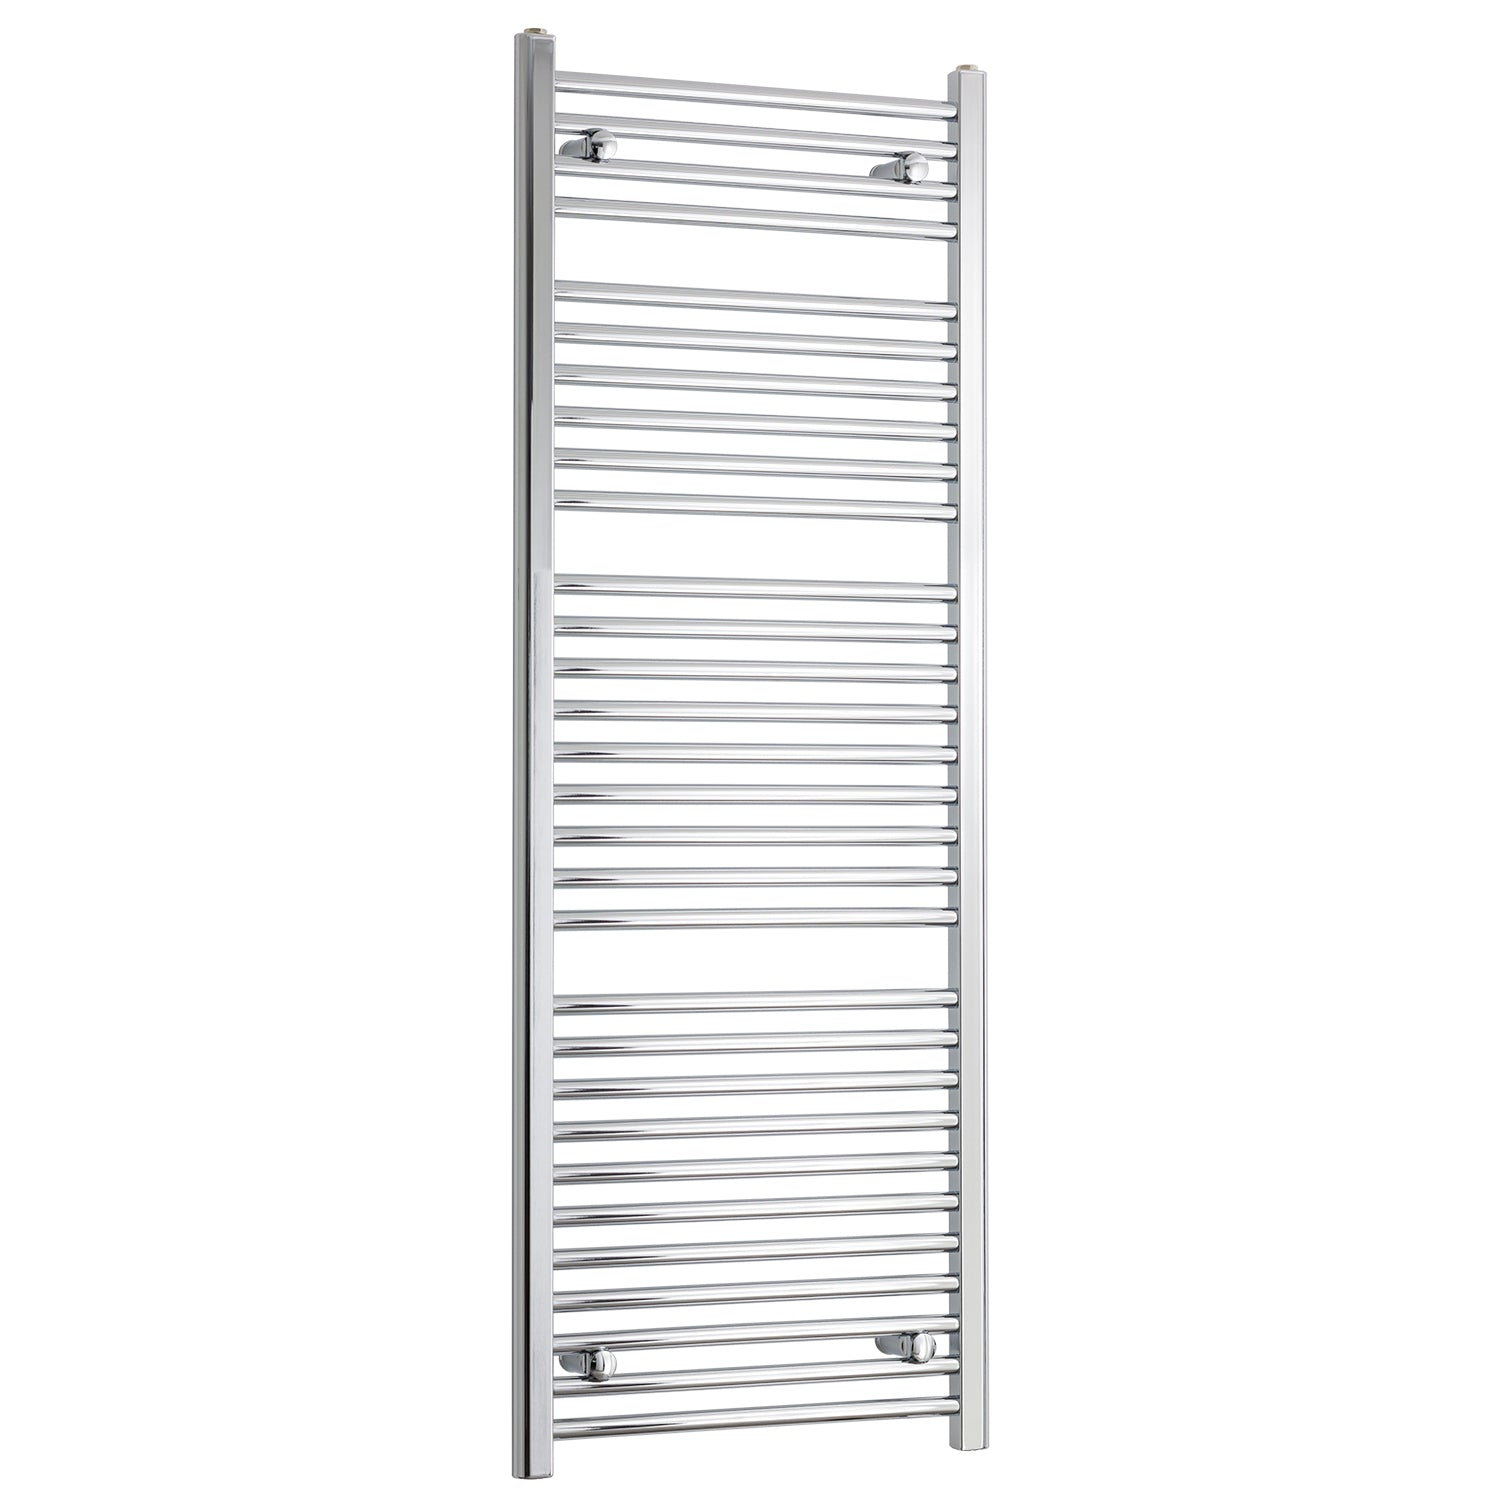 550mm Wide 1500mm High Straight Chrome Heated Towel Rail Radiator HTR Central Heating,Towel Rail Only